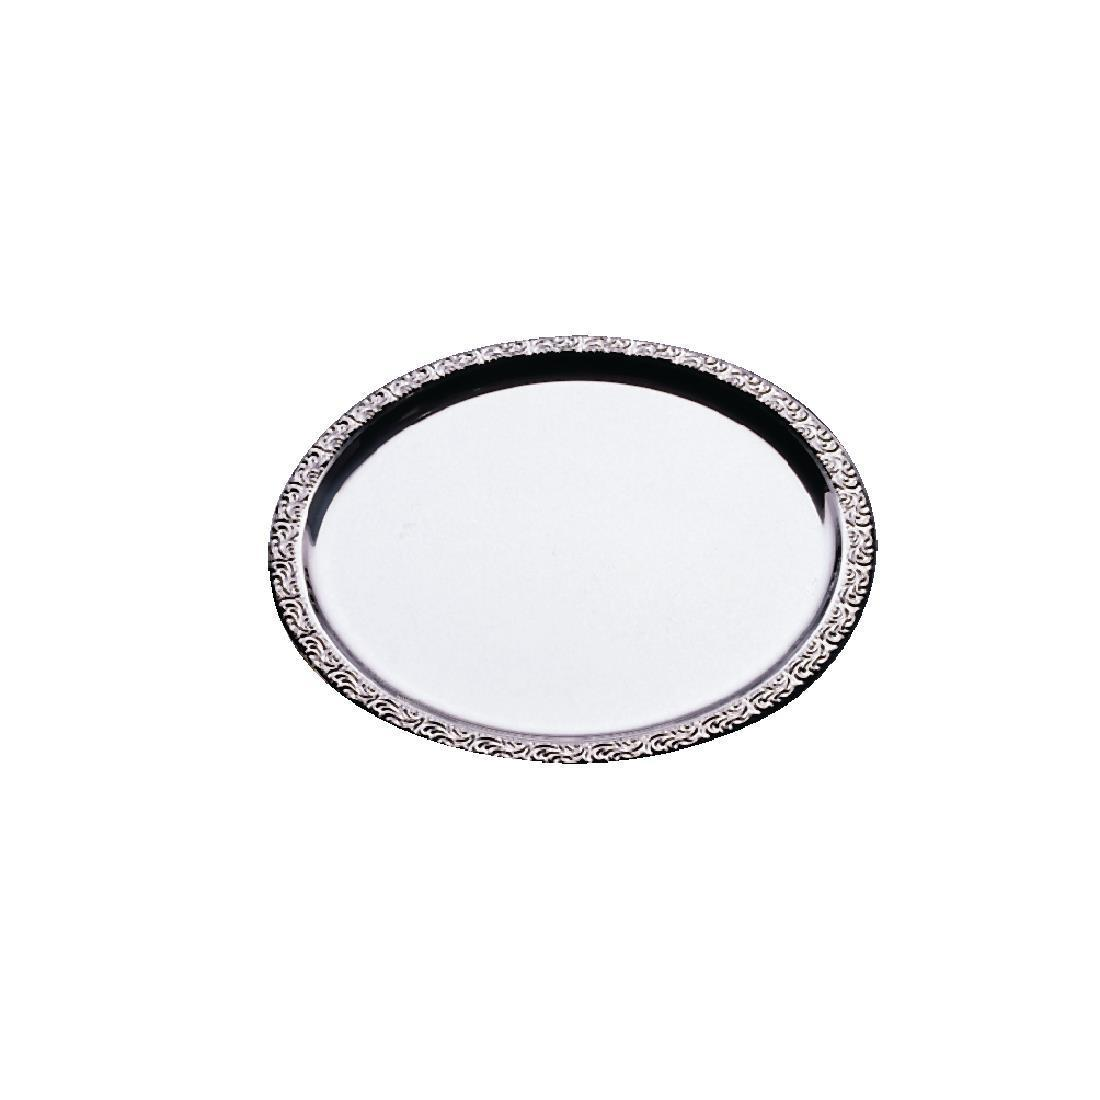 APS Stainless Steel Round Service Tray 350mm - Each - P003